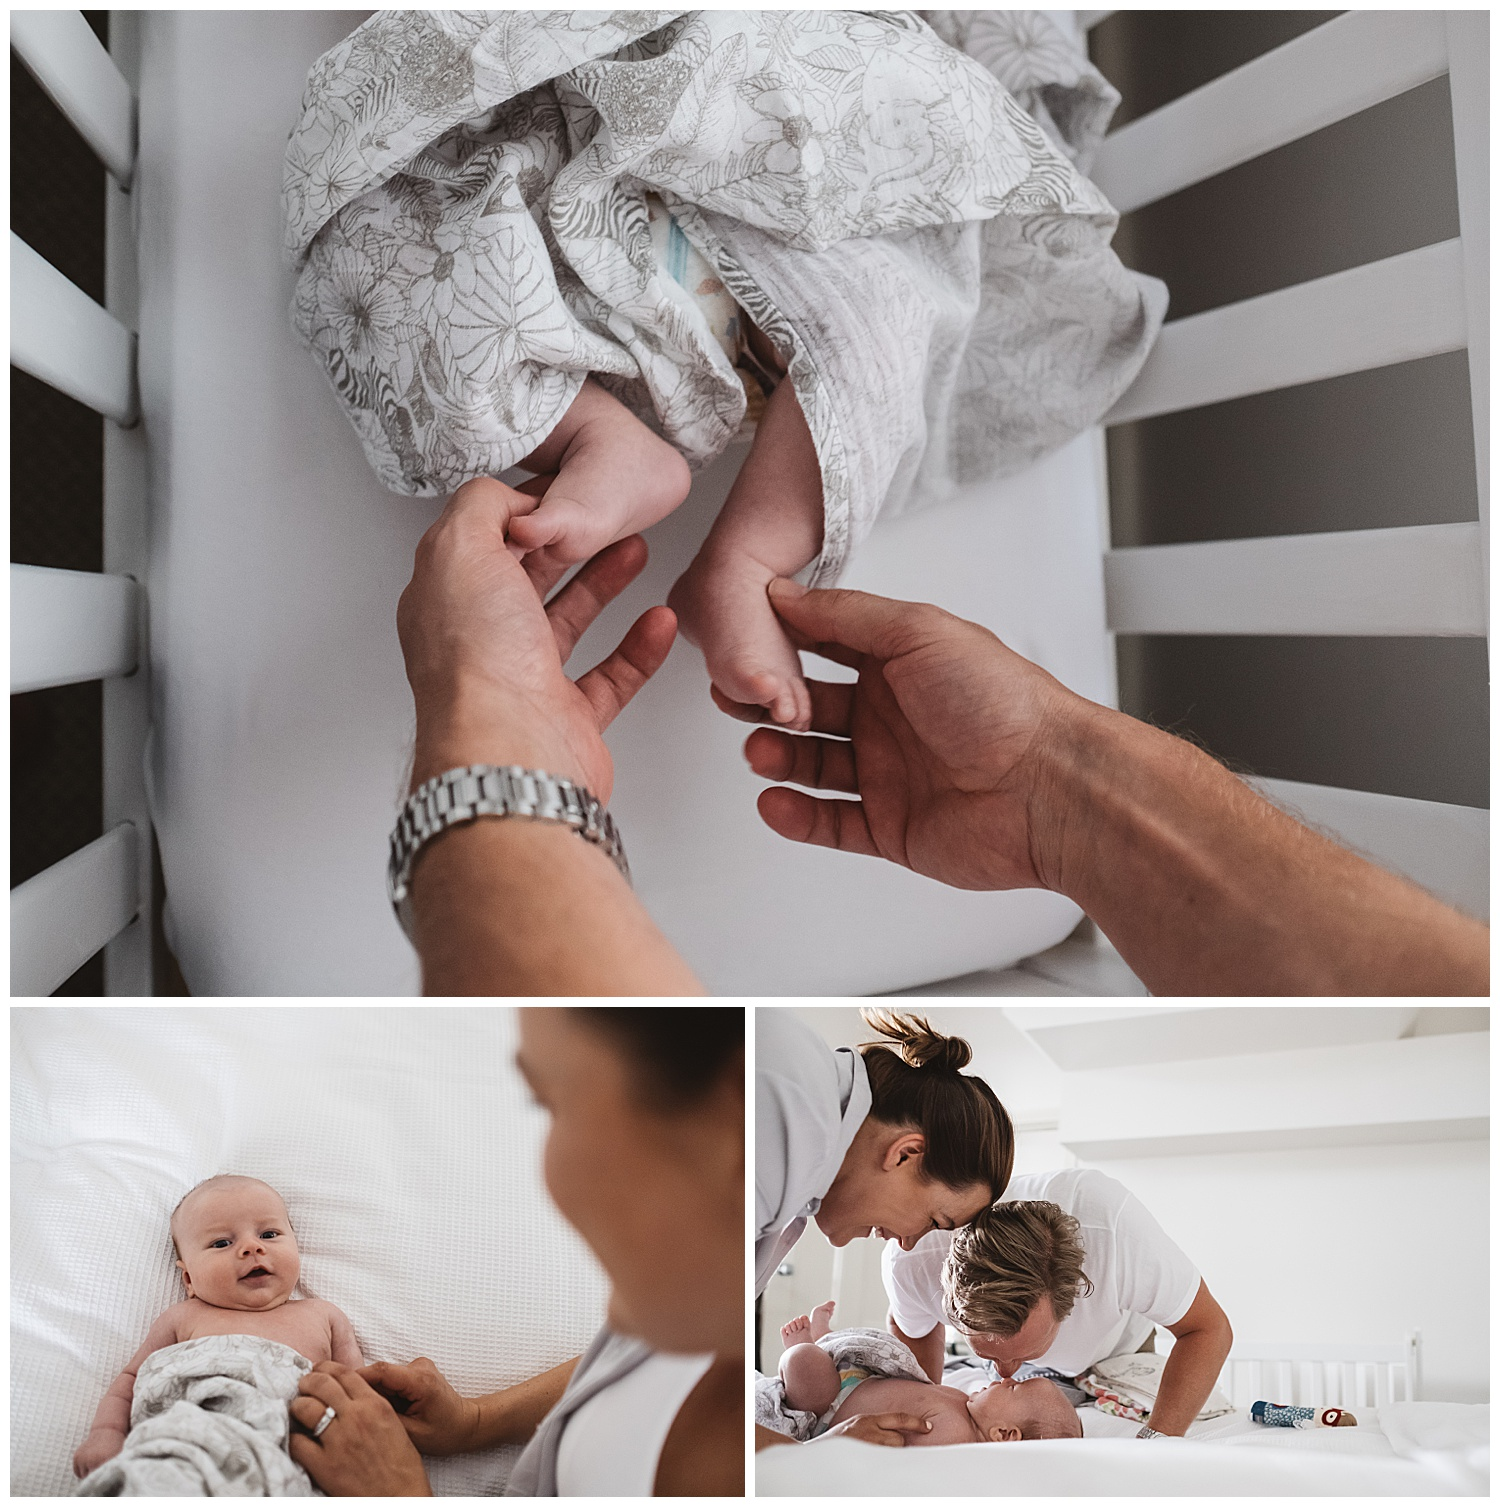 brunswick family photography at home. Melbourne lifestyle newborn portraits